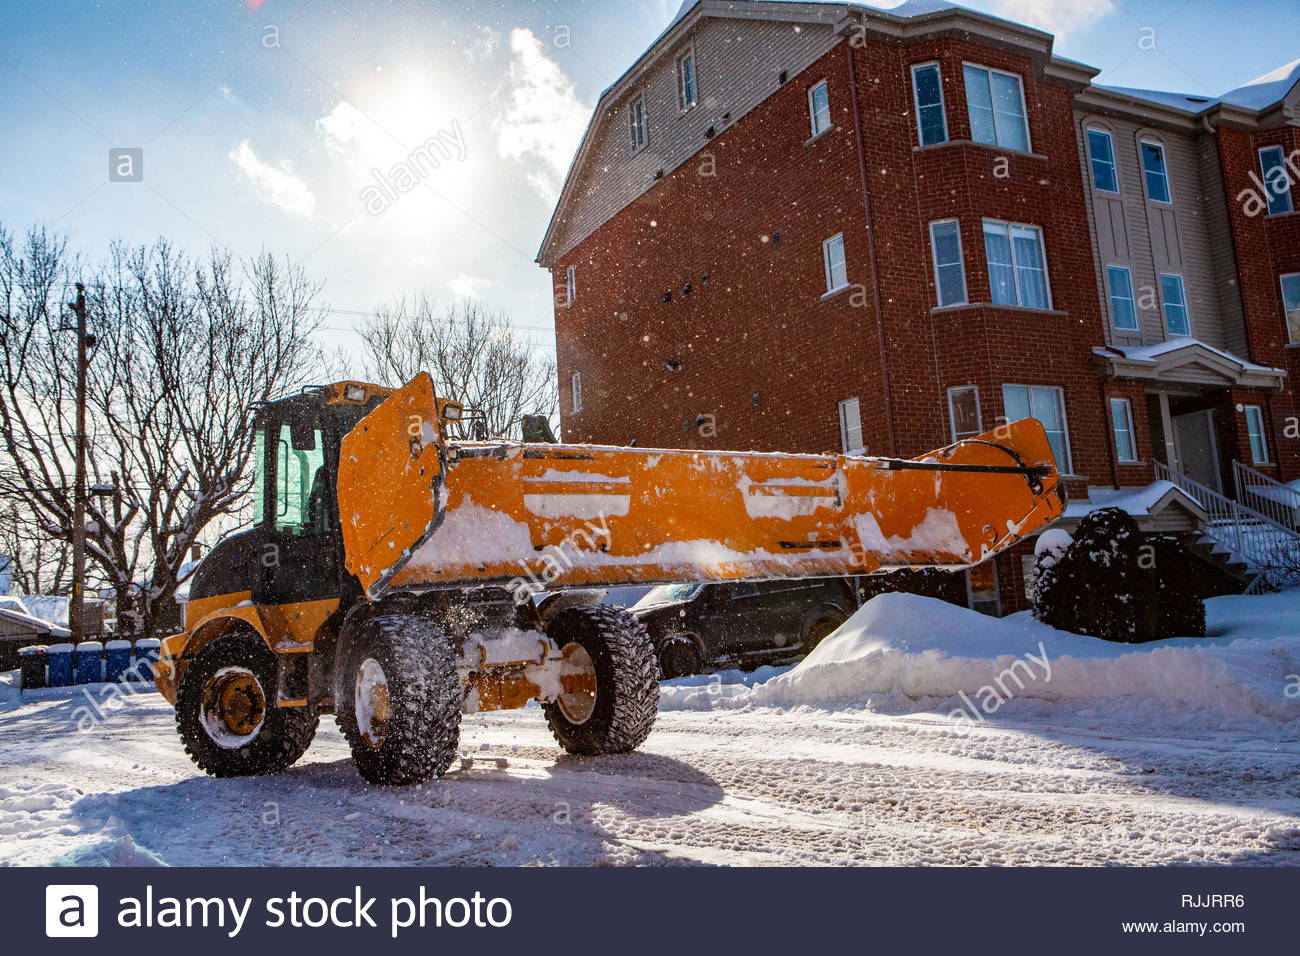 Snowplow tractor clearing snow. Wide view of yellow snowplow clearing the streets after a snow storm, snowflakes in the air on a sunny day - Stock Image